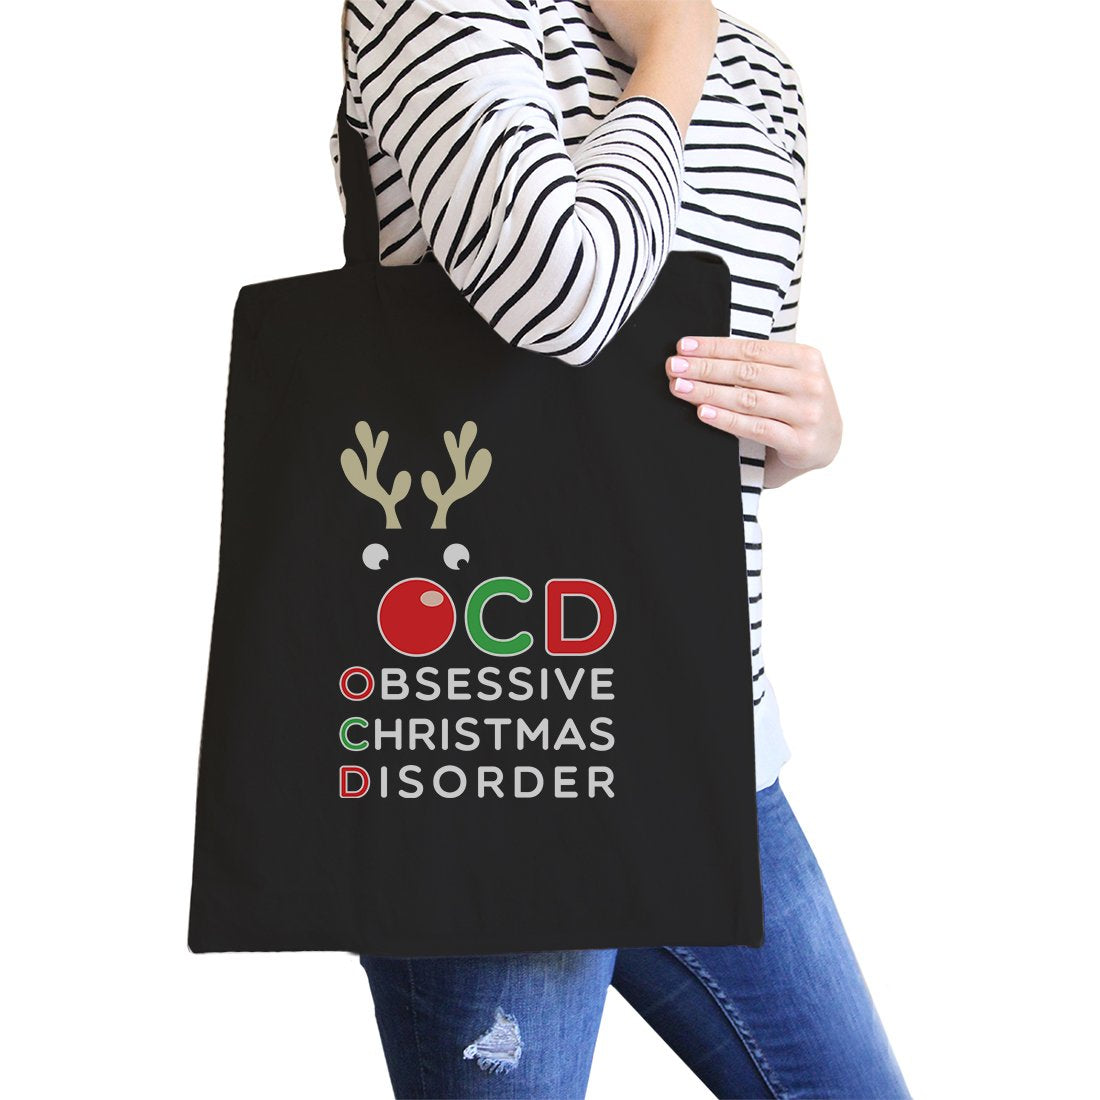 Rudolph OCD Canvas Shoulder Bag Foldable Heavy Cotton Tote Gifts